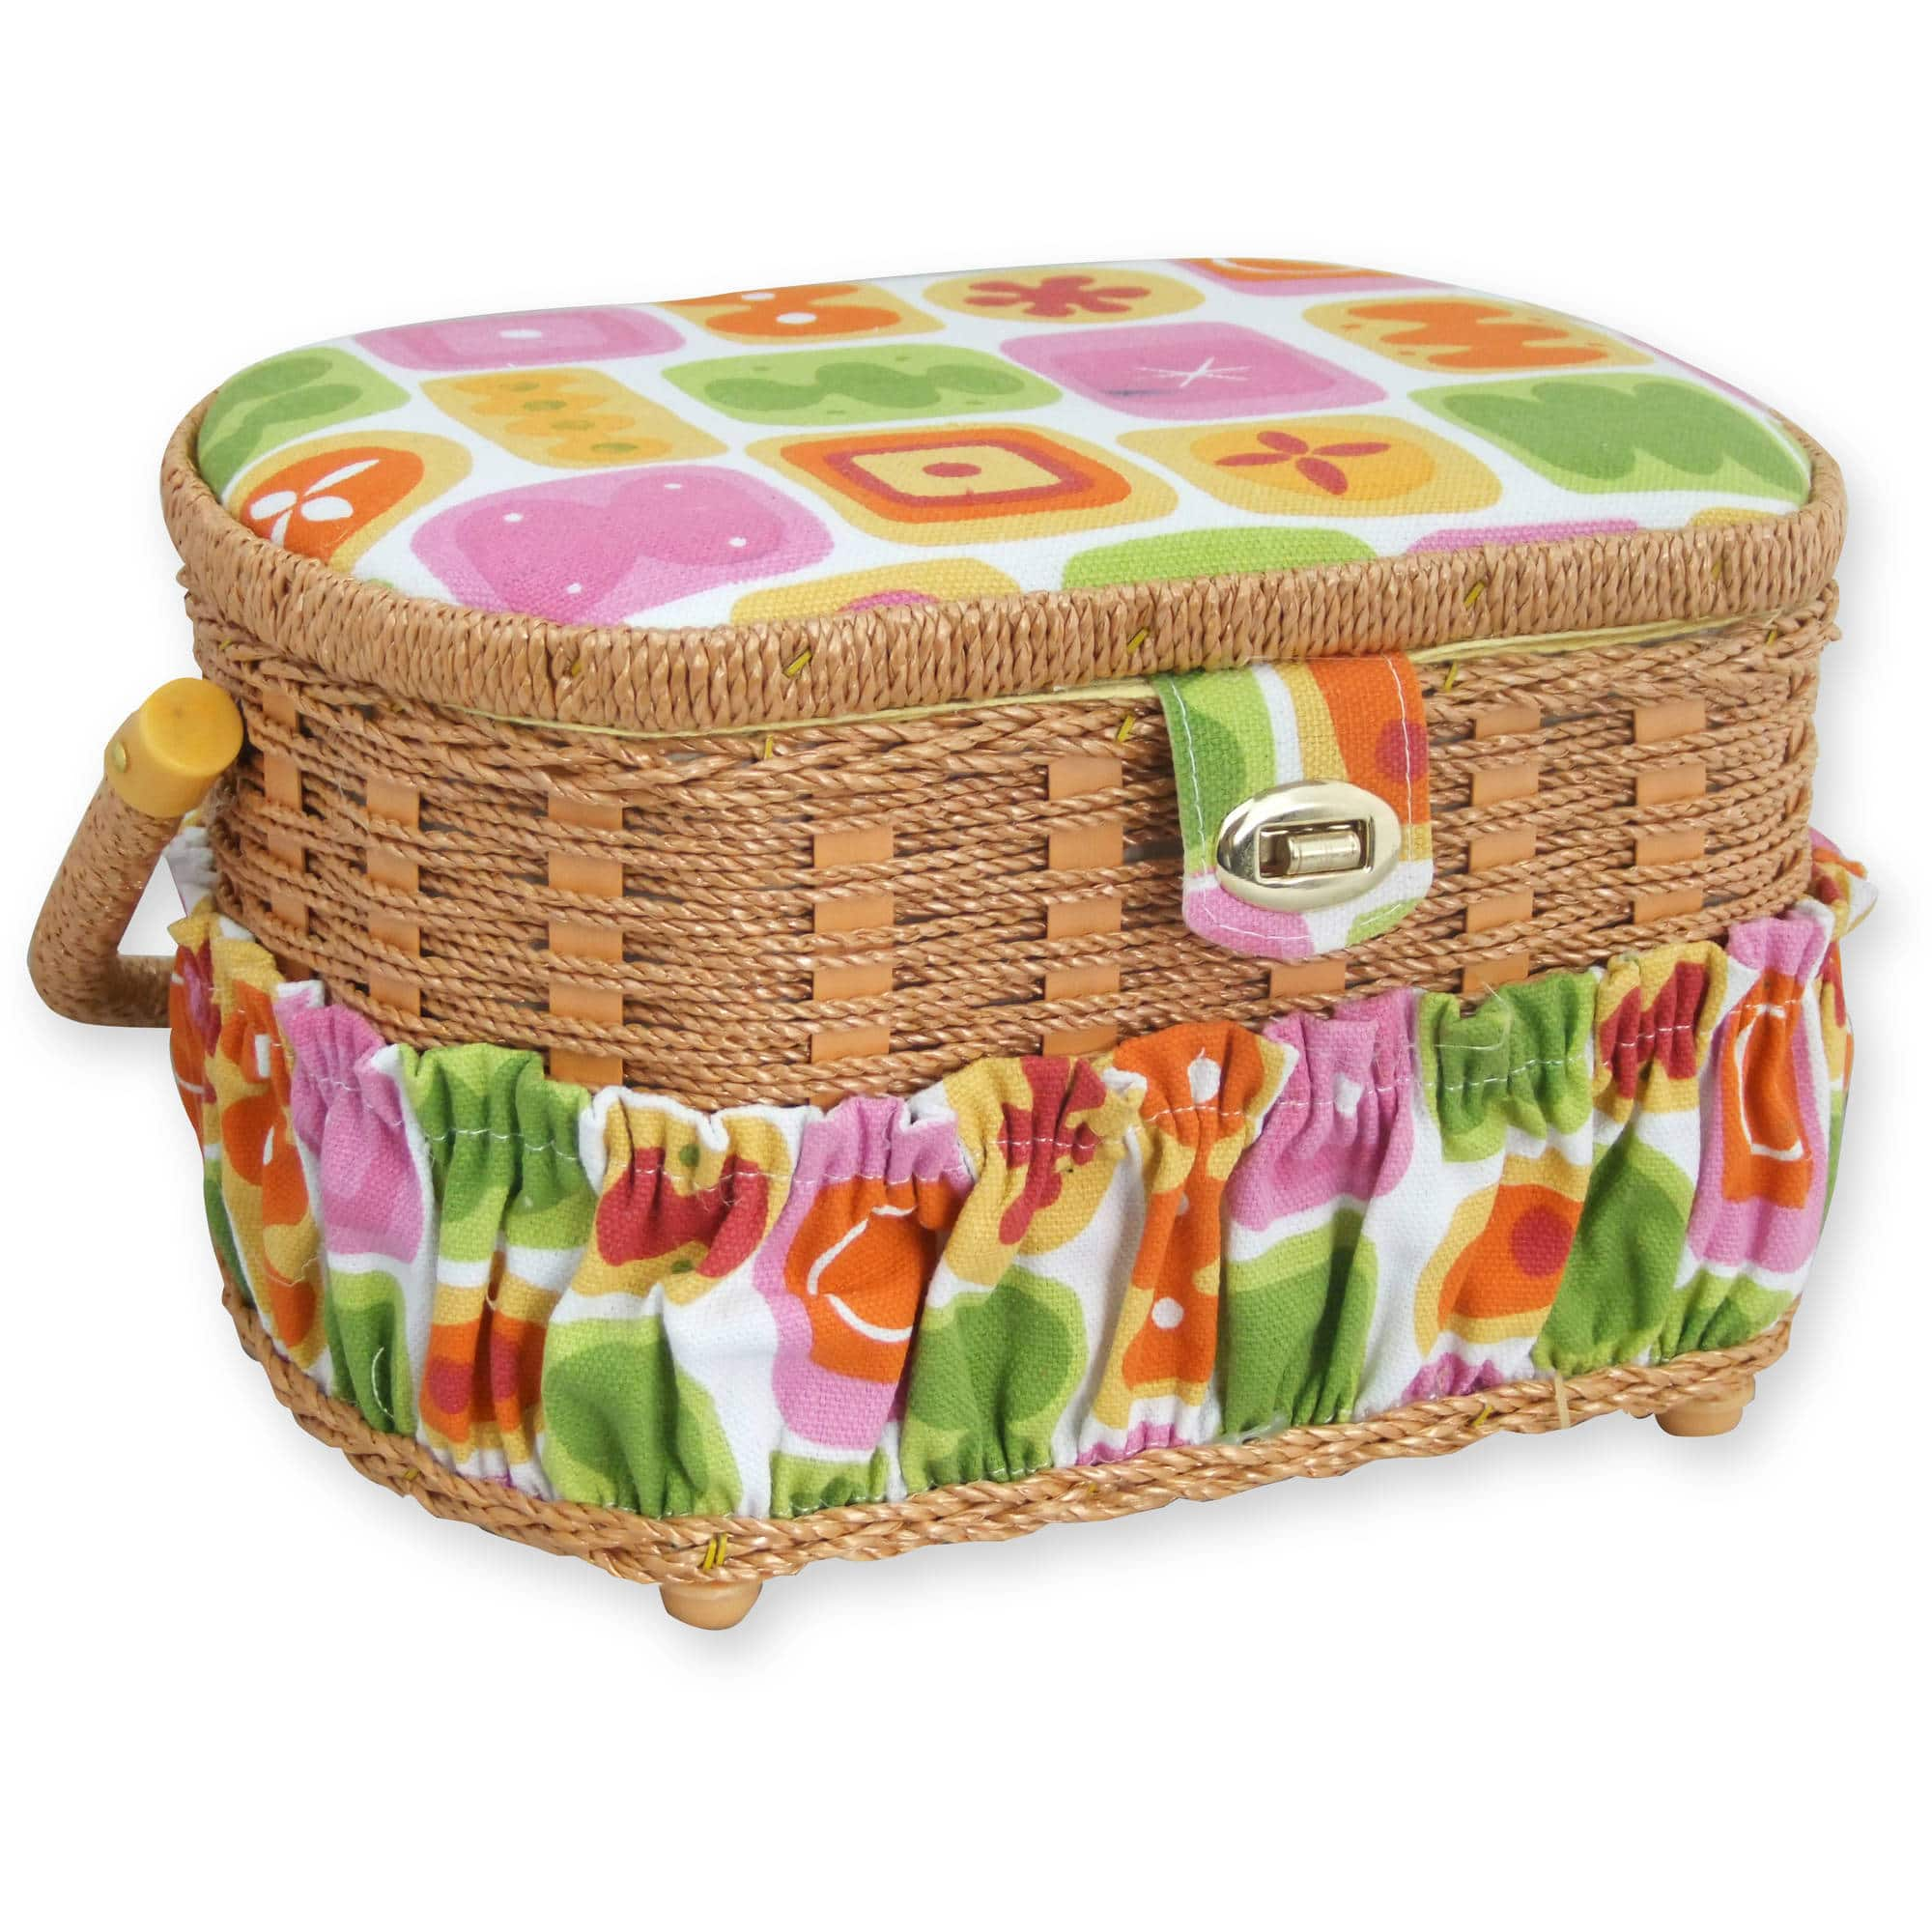 Michley Sewing Basket with 41-Piece Sewing Kit $9.99 @ Walmart.com